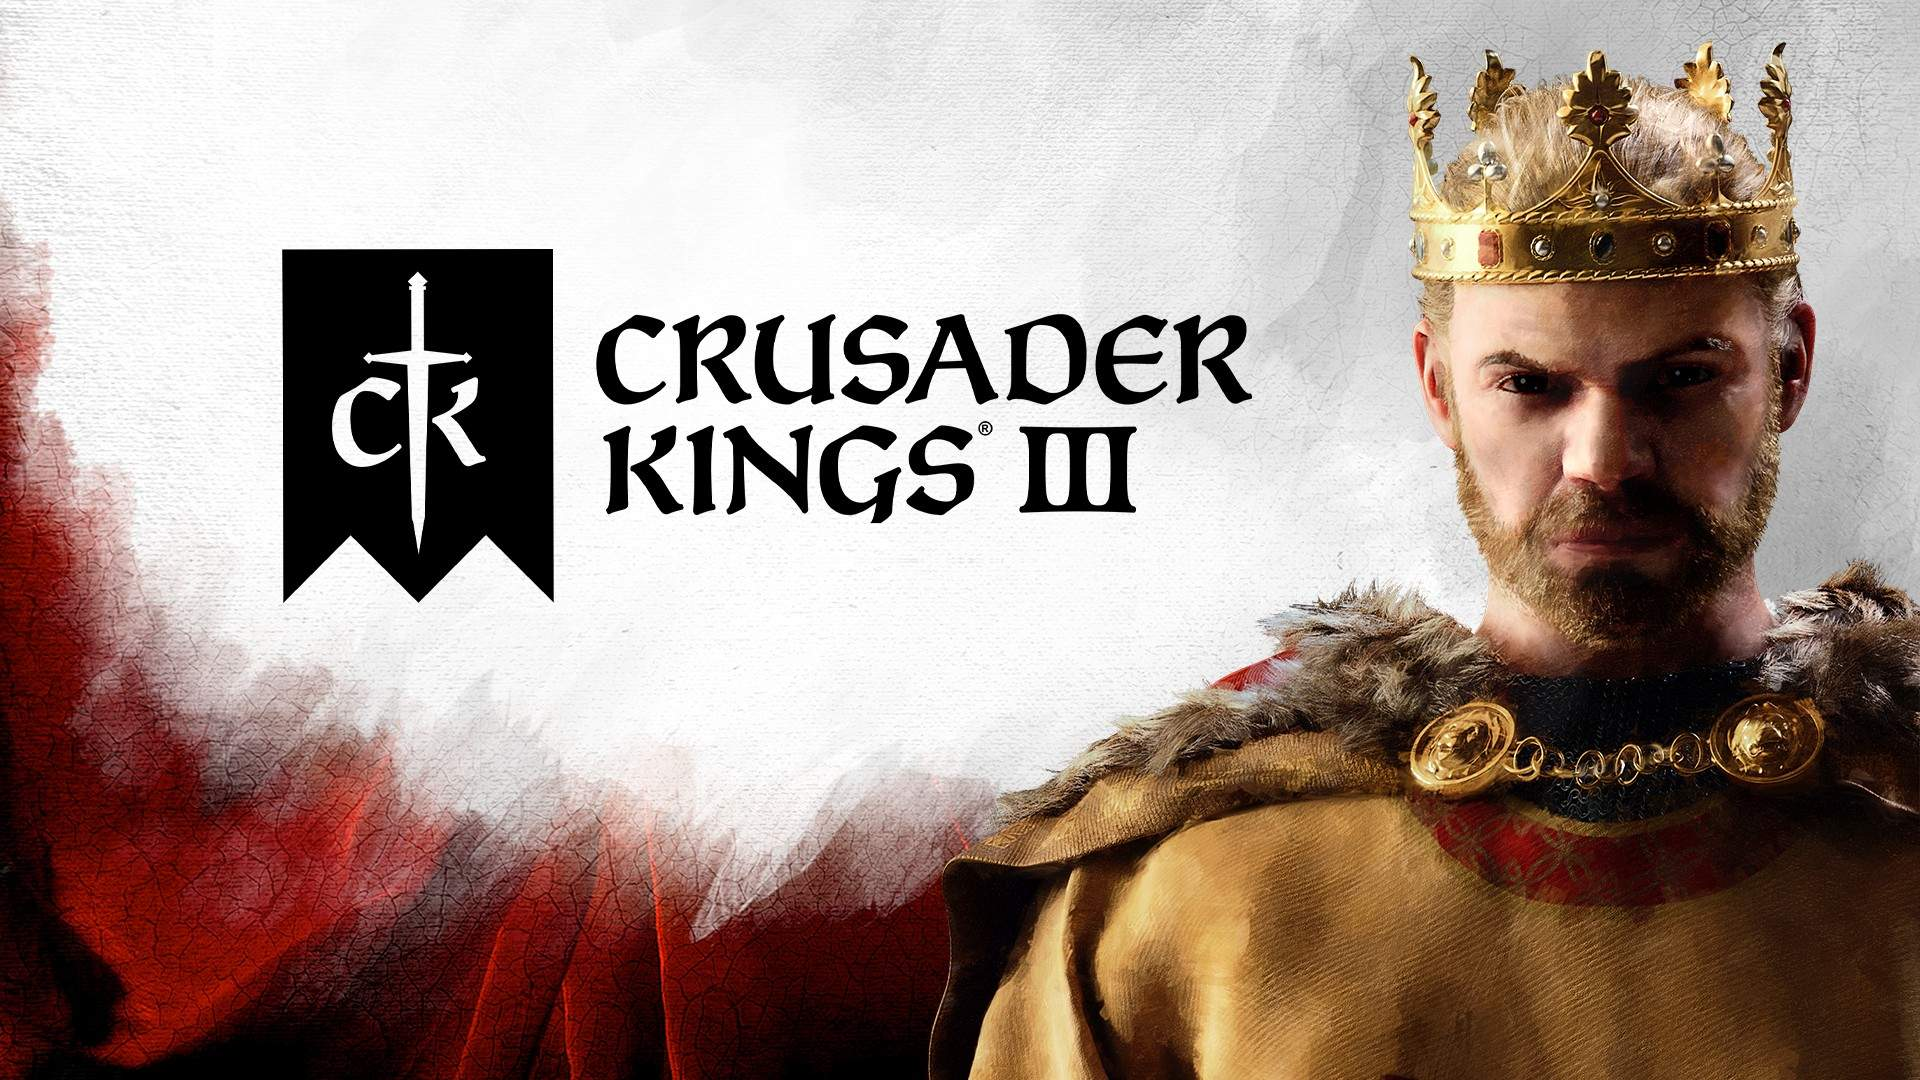 Video For gamescom 2021: Crusader Kings III Coming Soon to Xbox Series X